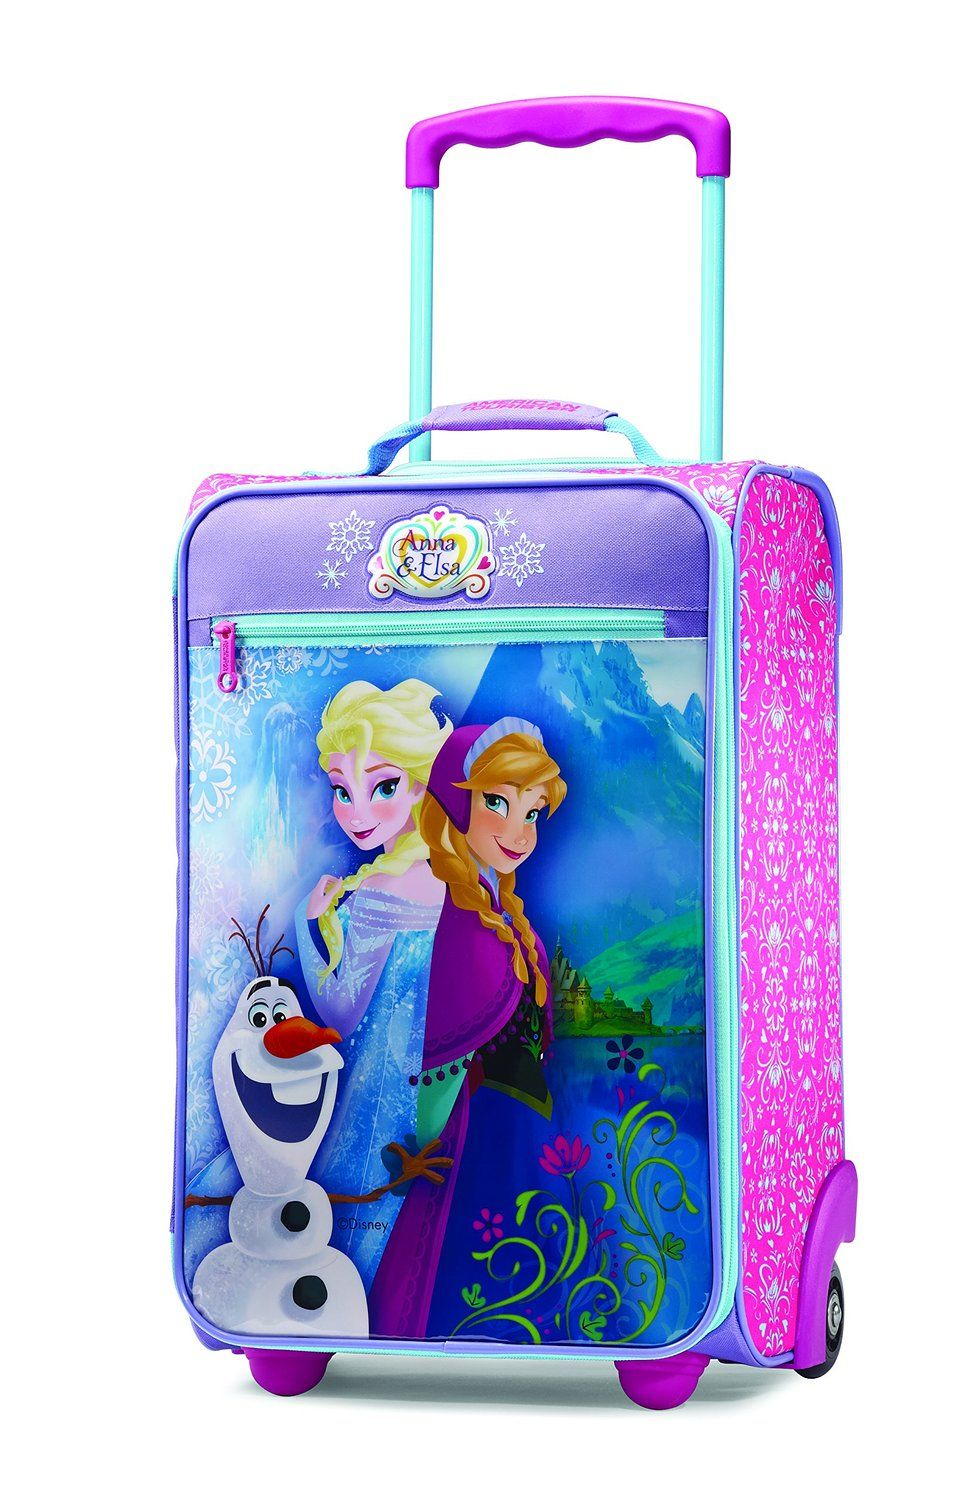 68fddbde56 Frozen luggage